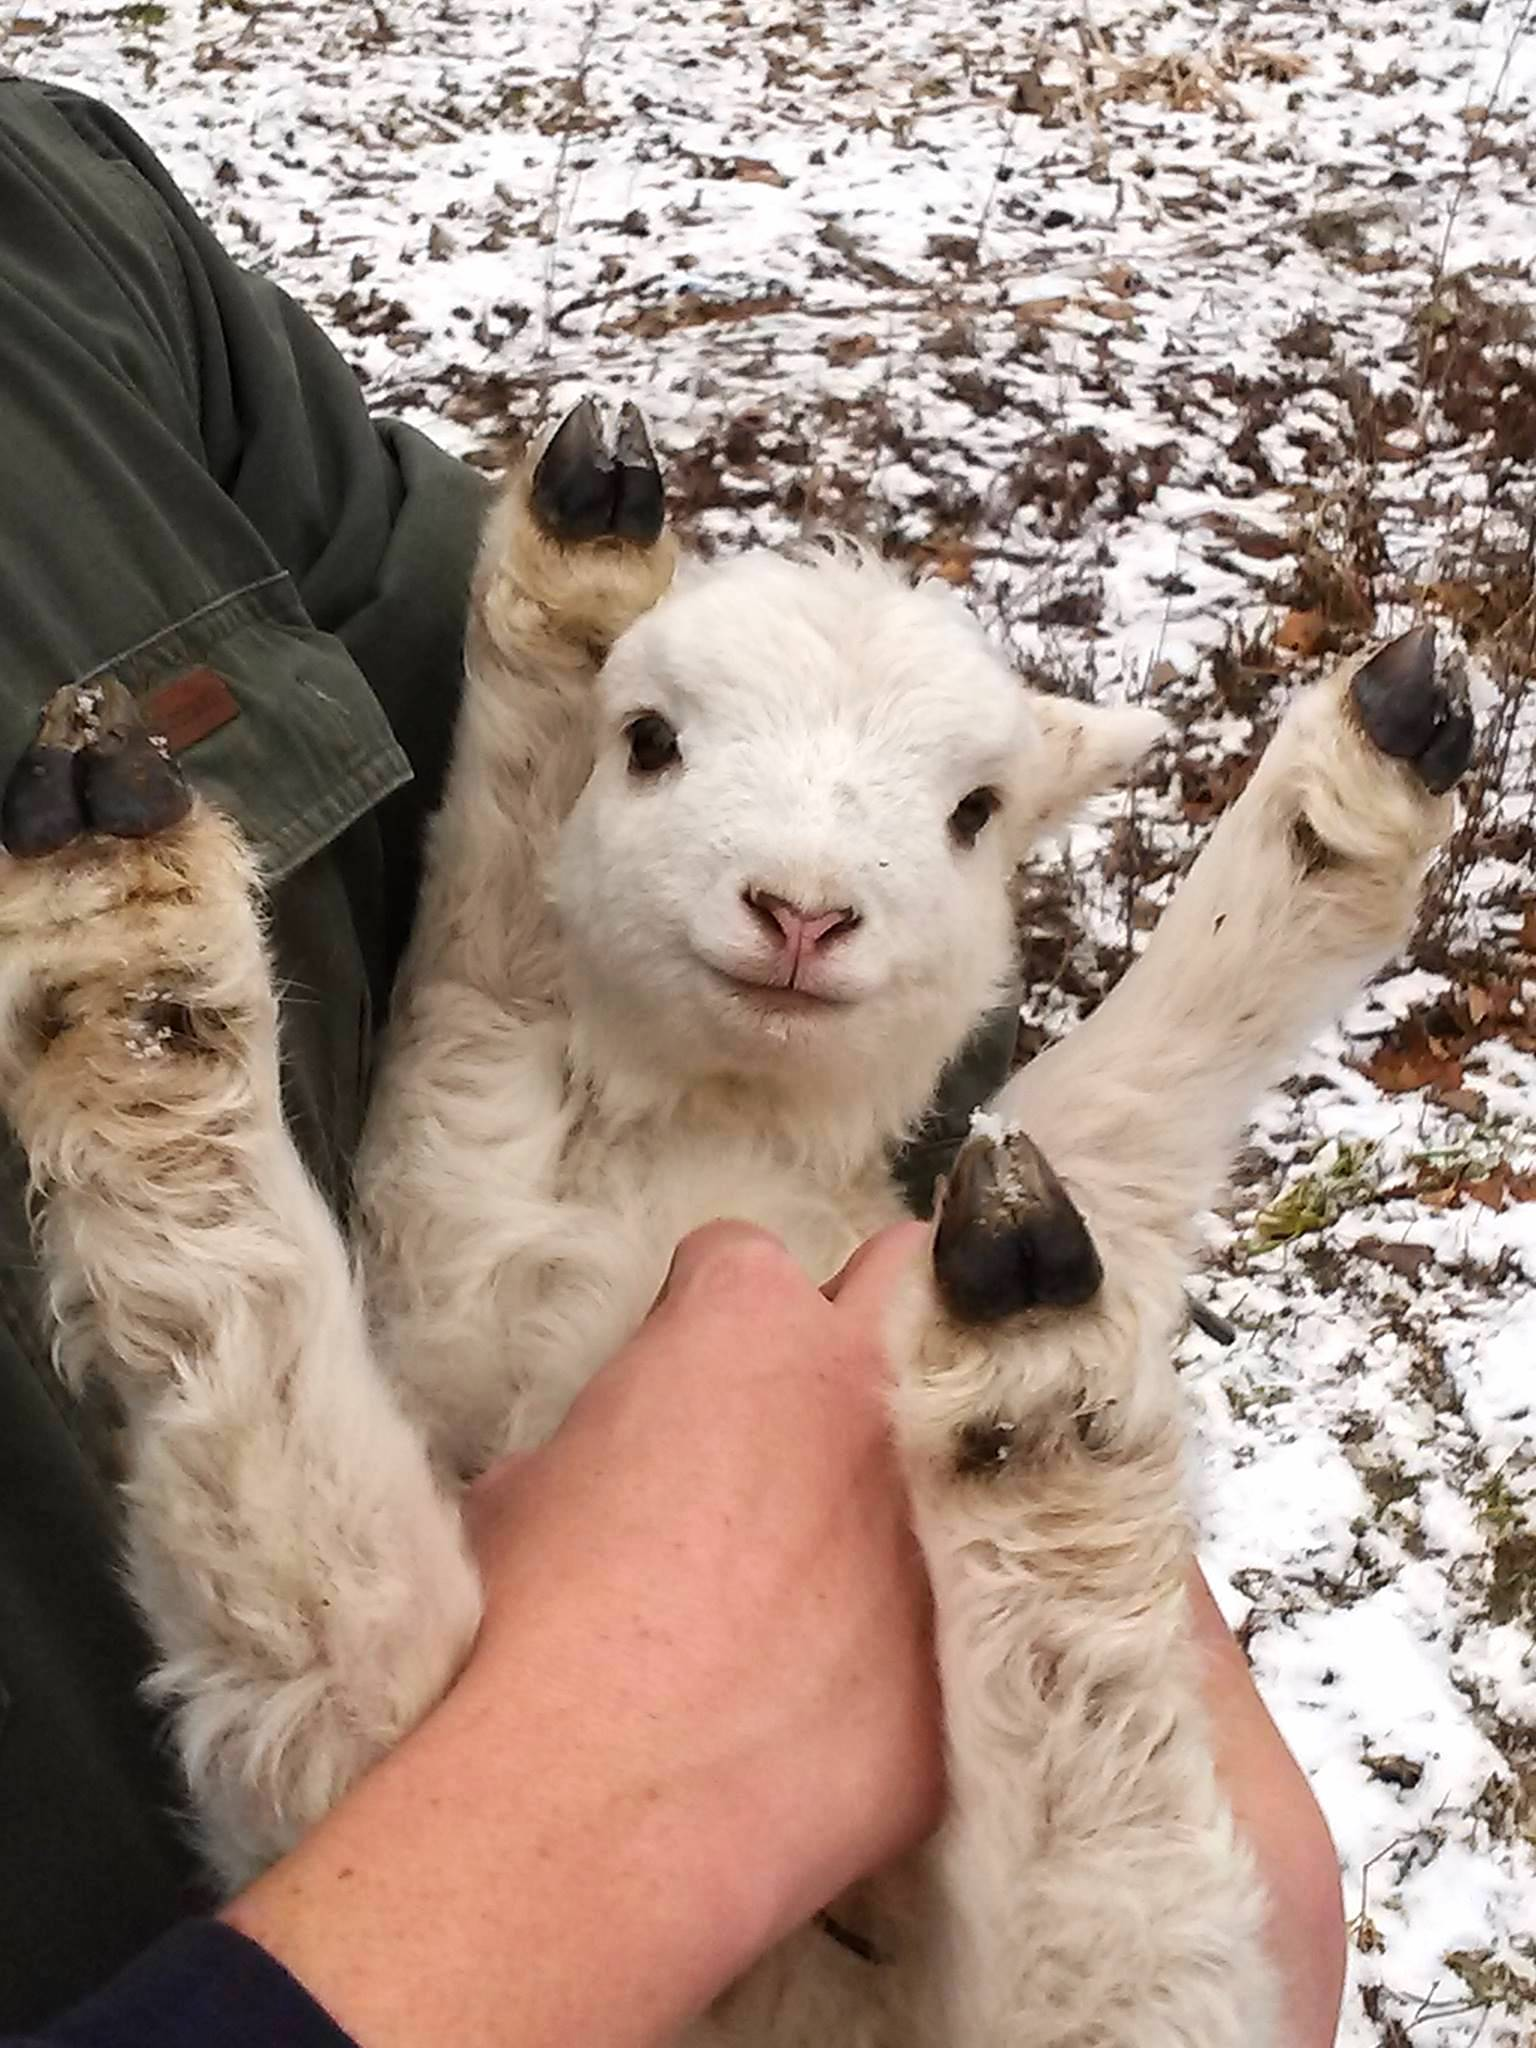 Someone picked up a baby lamb and it did the cutest thing ever.